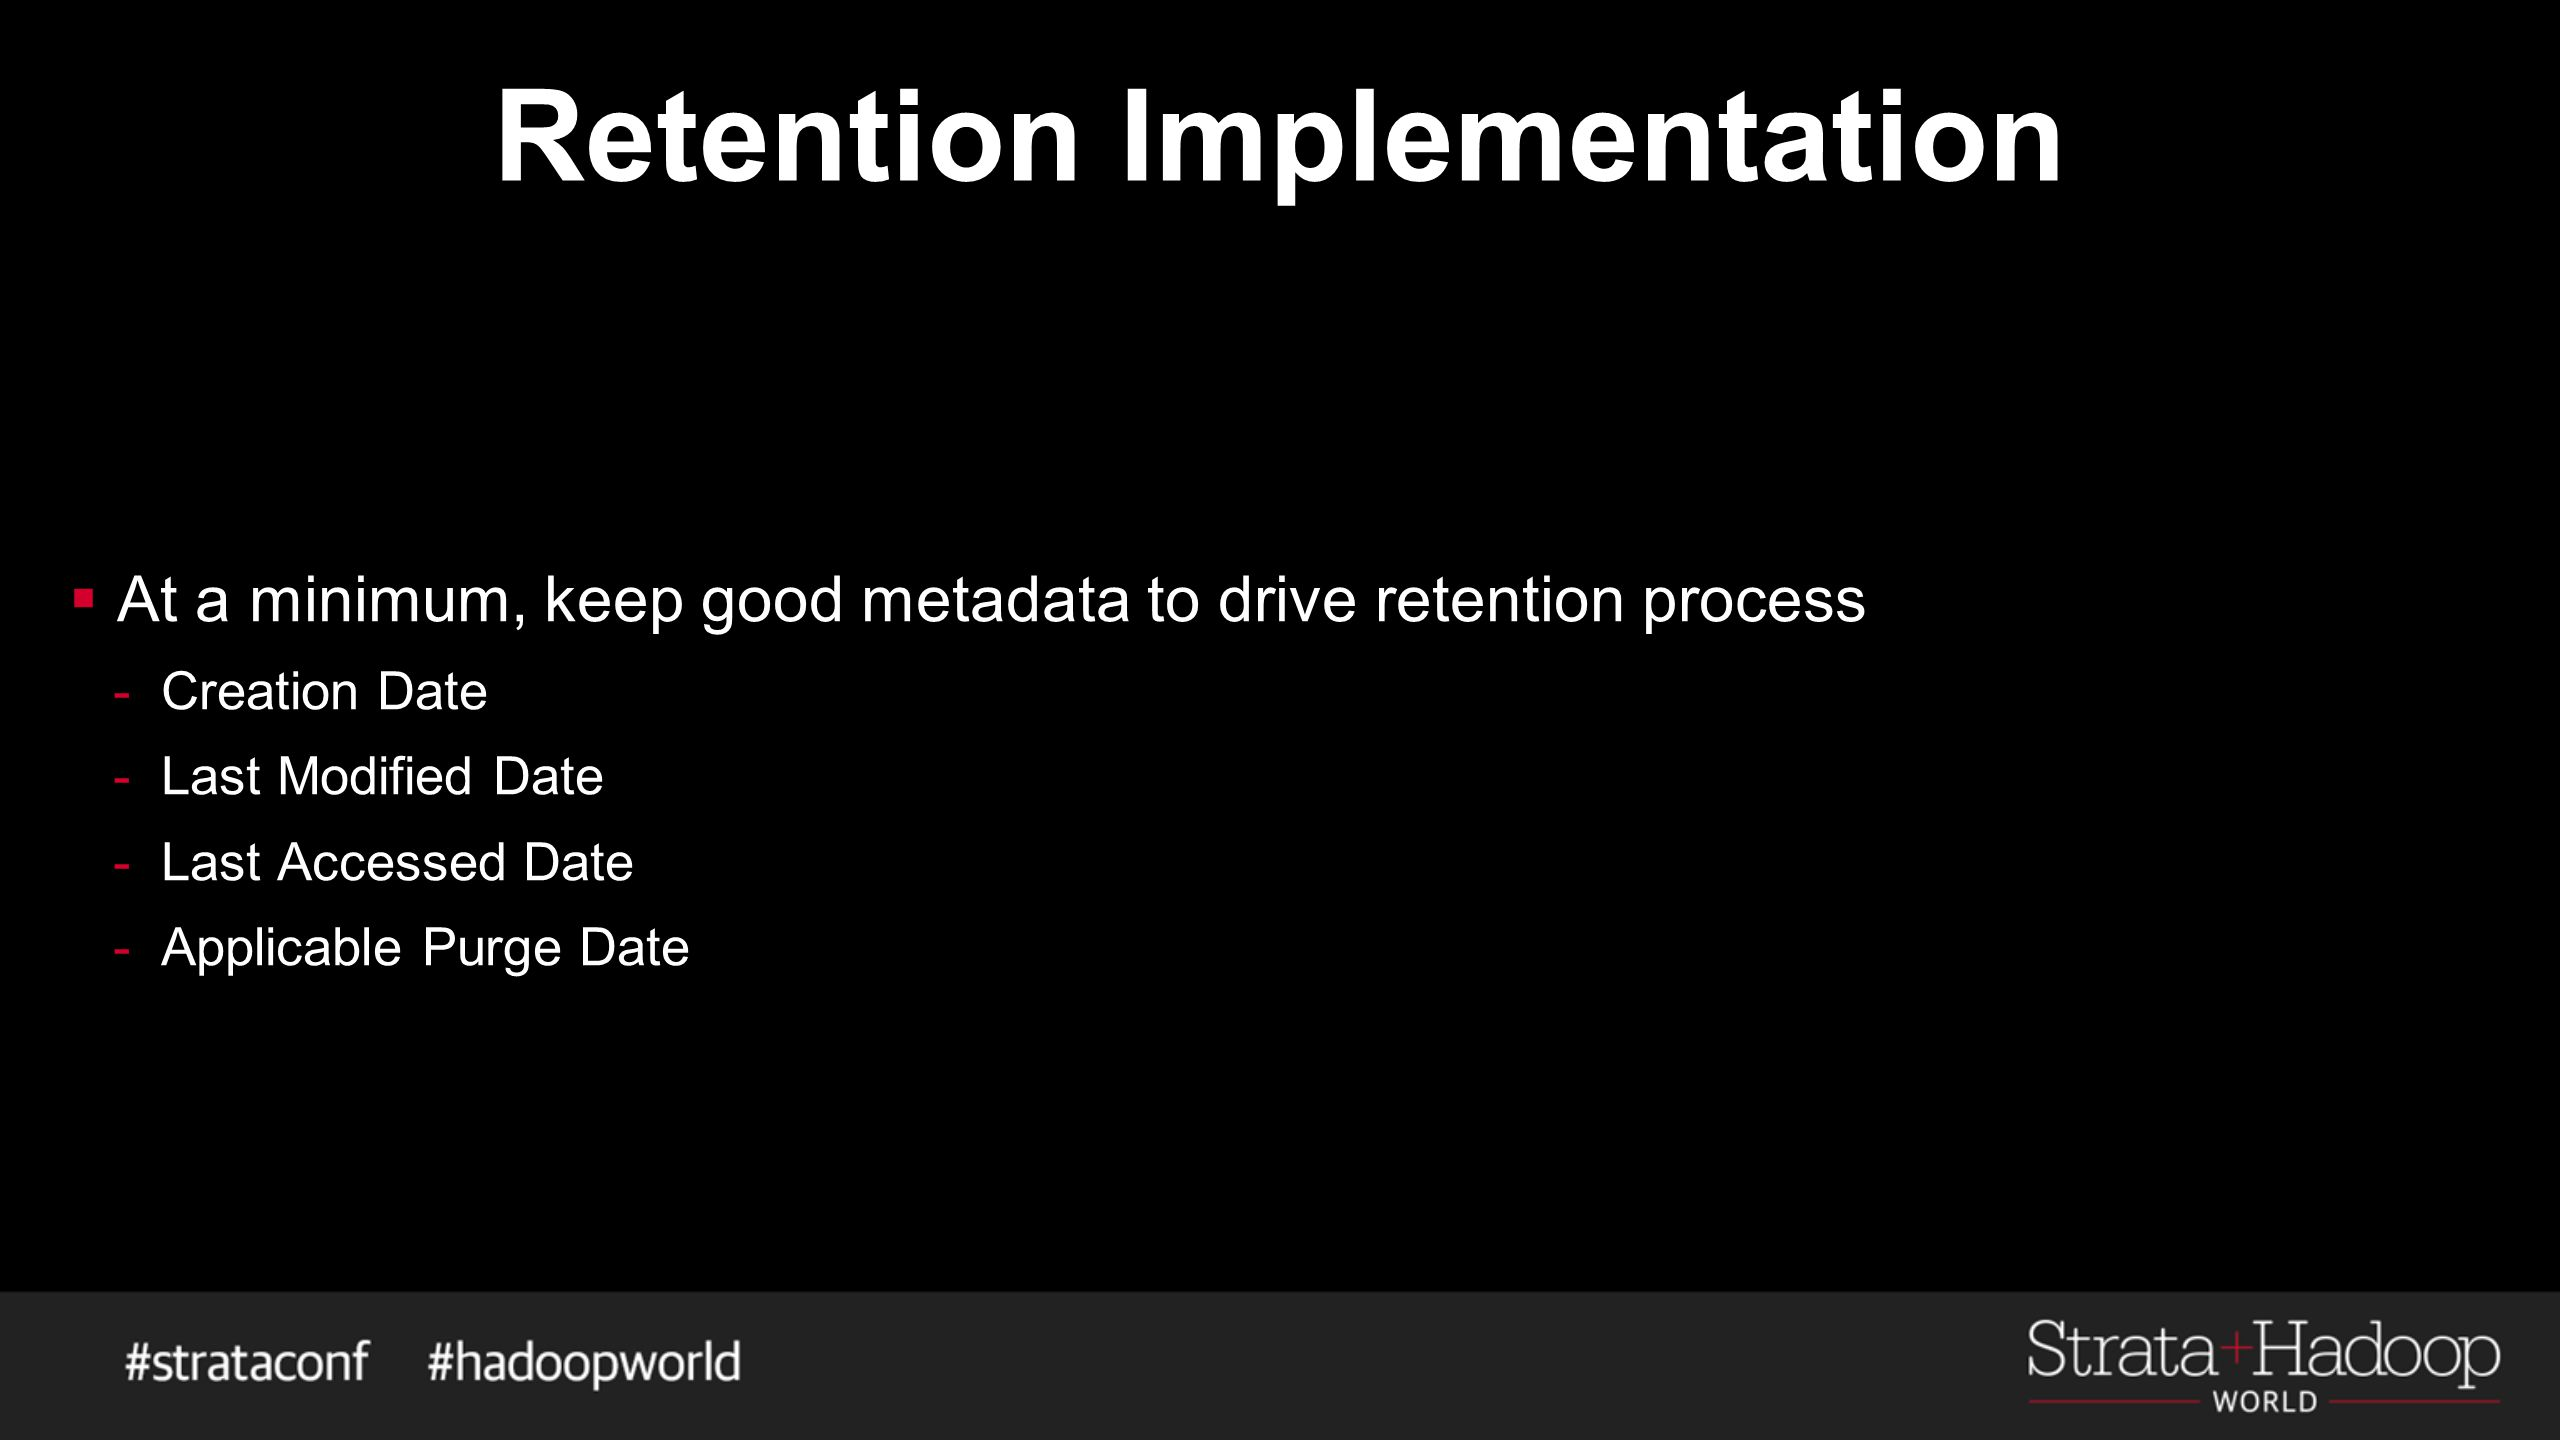 Retention Implementation  At a minimum, keep good metadata to drive retention process -Creation Date -Last Modified Date -Last Accessed Date -Applica